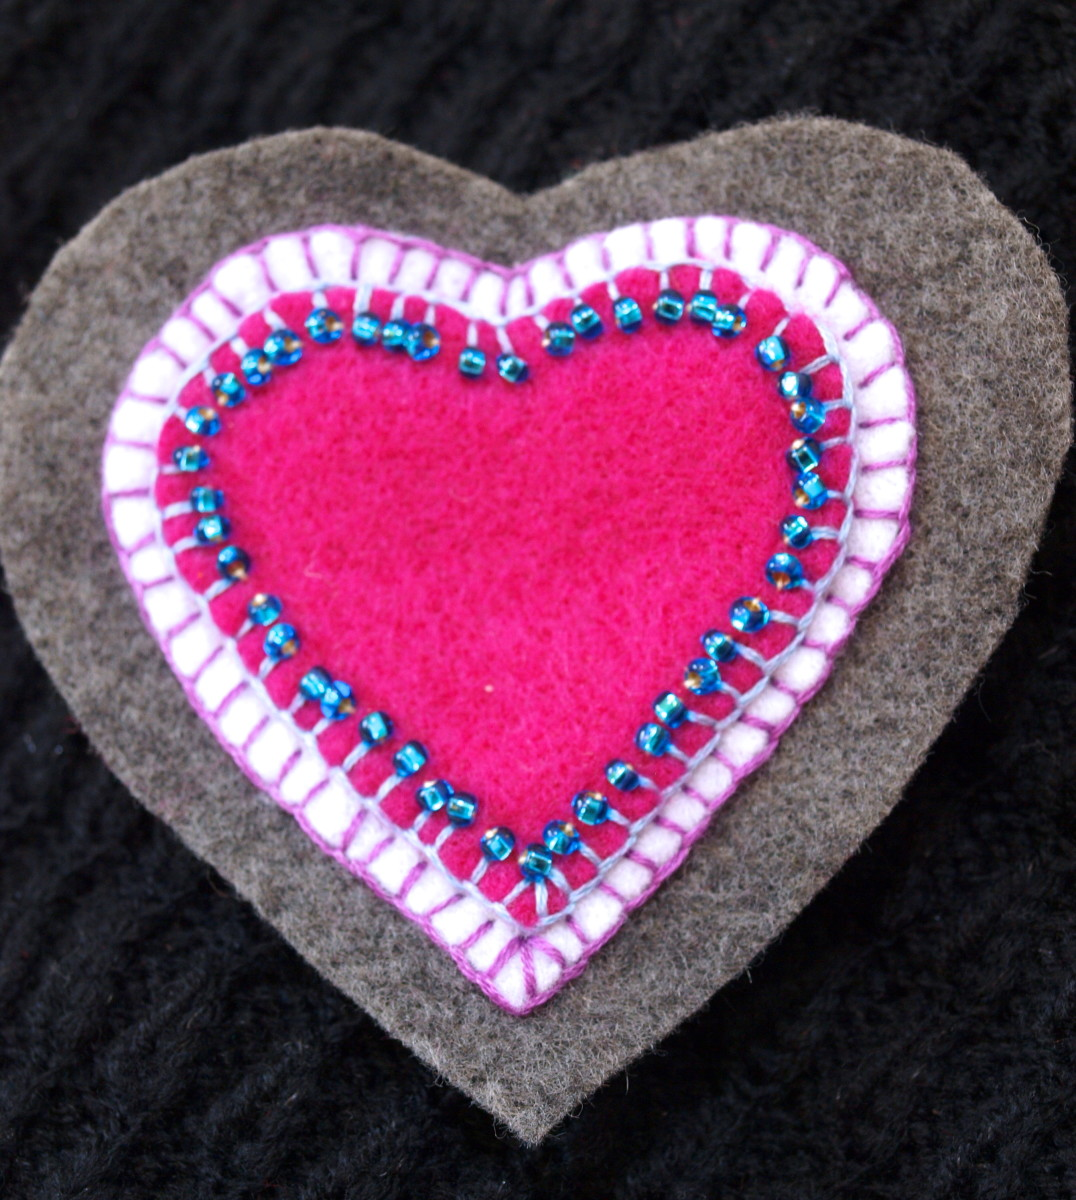 Heart shaped felt brooch.  I used a blanket stitch for all the layers and added the blue beads after I had stitched the pink heart to the white heart.